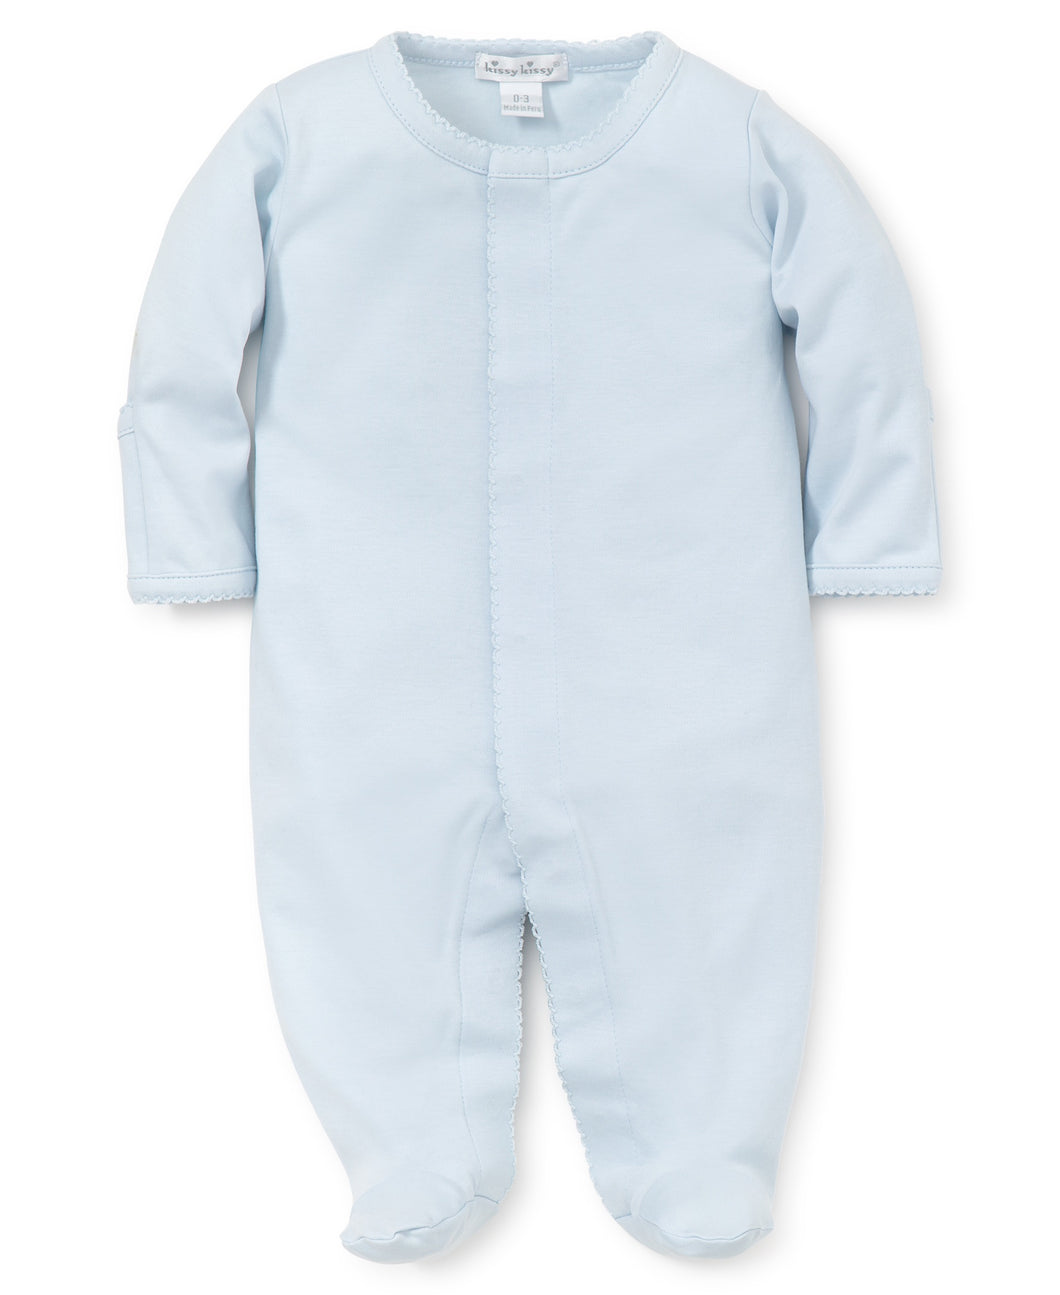 Kissy Kissy Basics Footie New - light blue/light blue